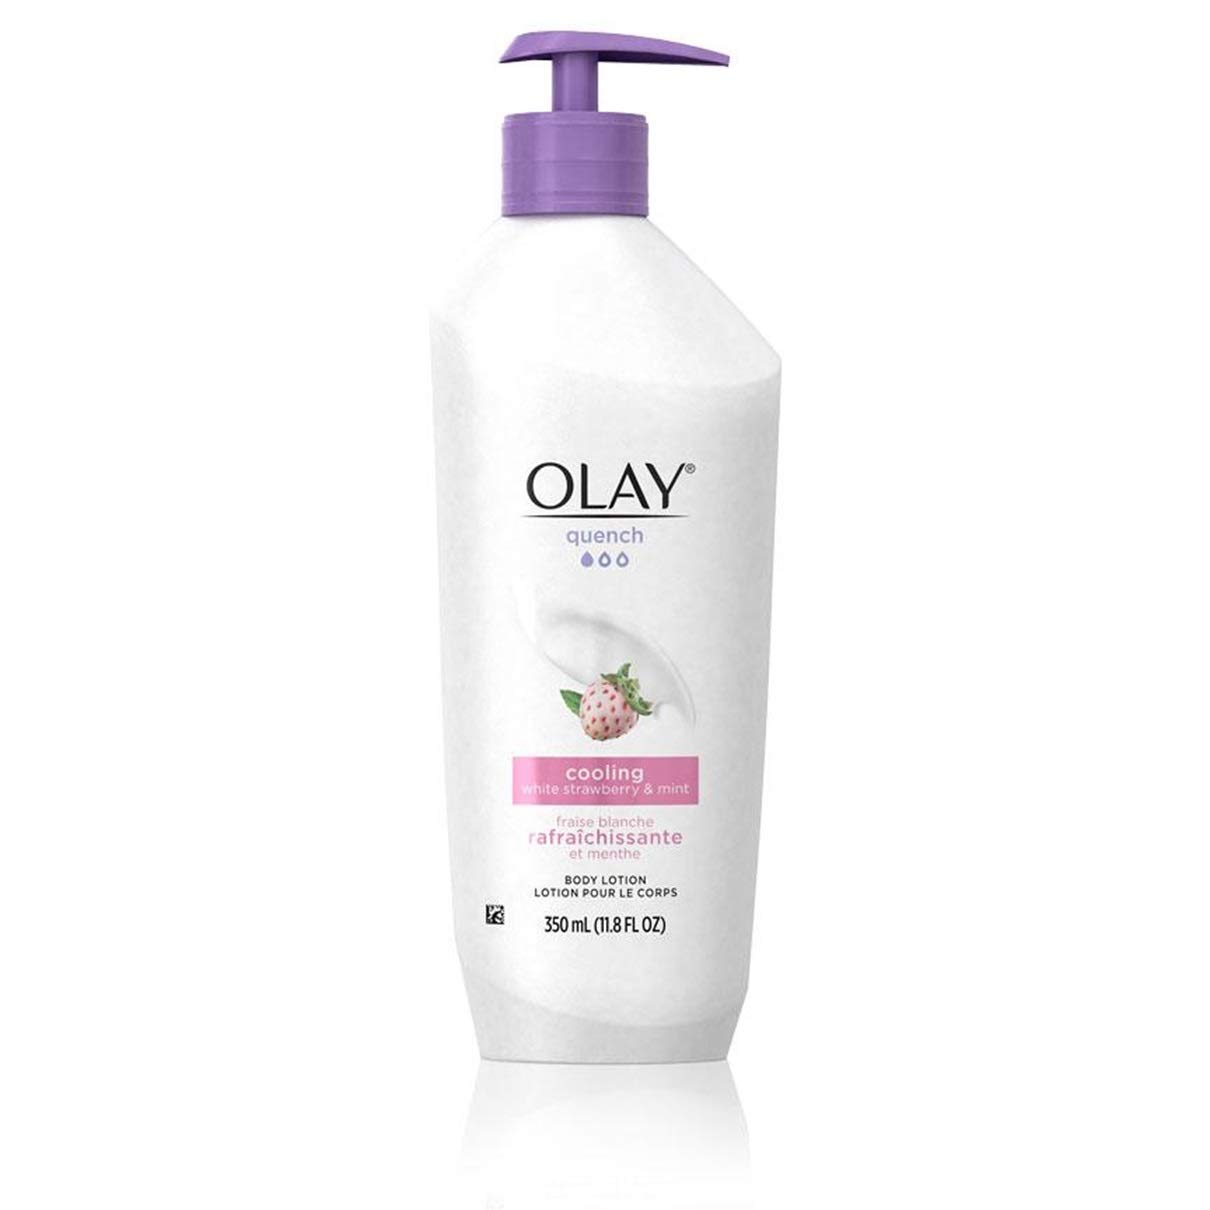 Olay Quench Cooling White Strawberry & Mint Body Lotion 11.8 oz, 2 Pack by Olay